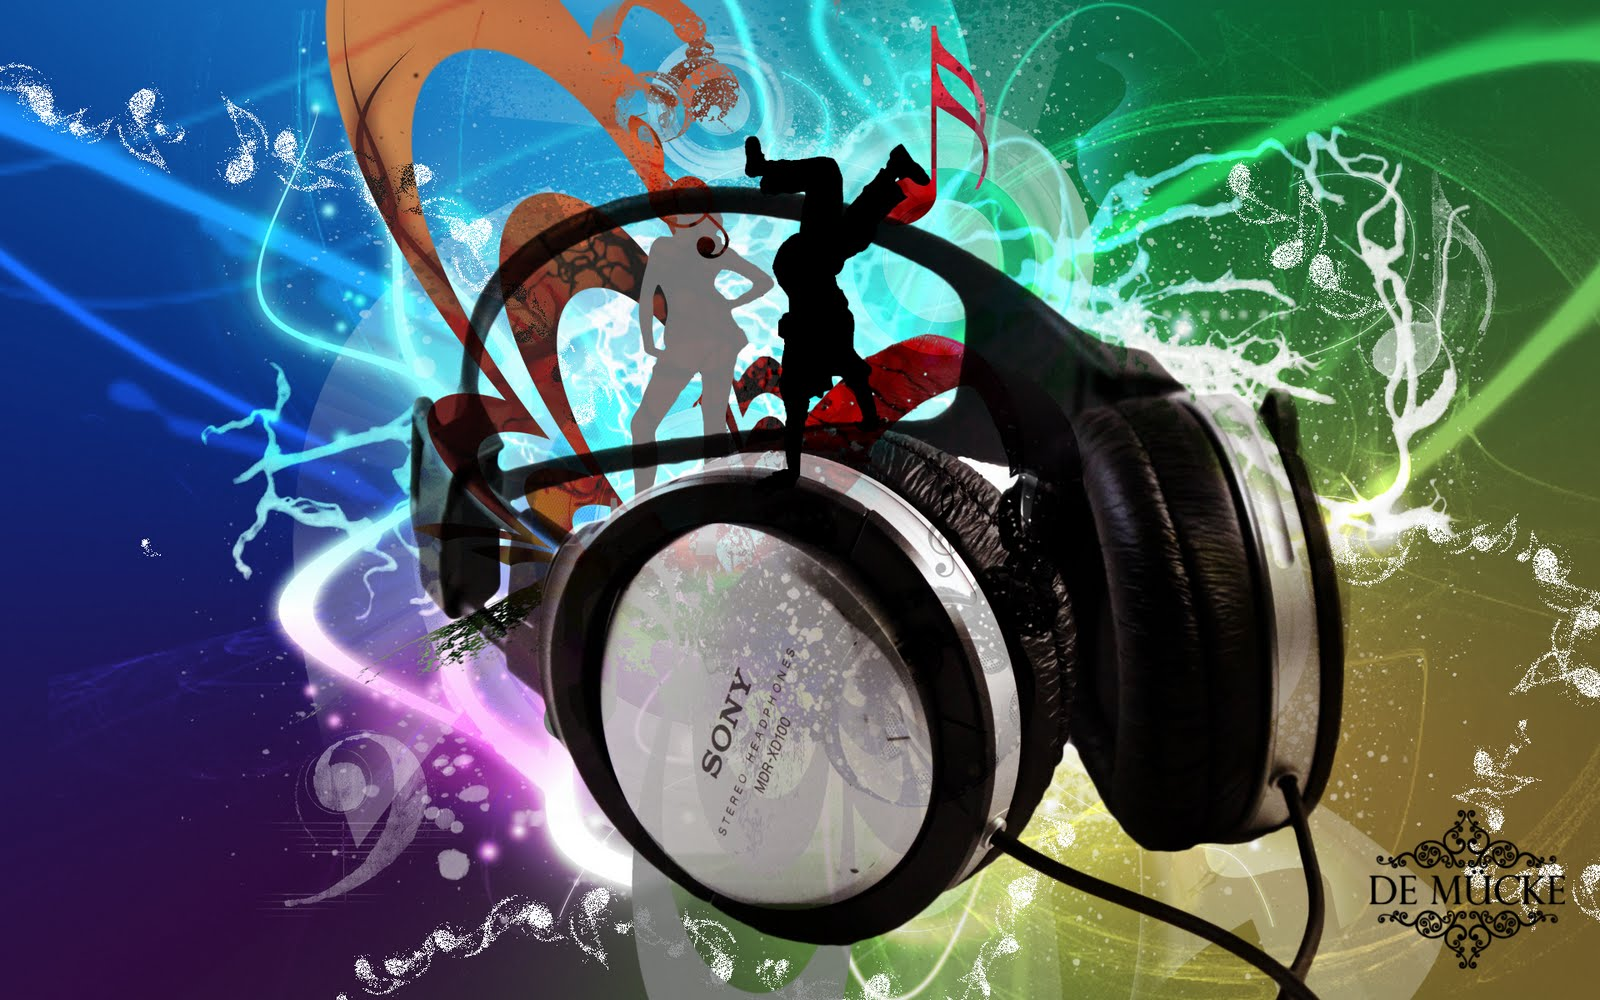 Cool music Background Wallpapers | HD Wallpapers Pics